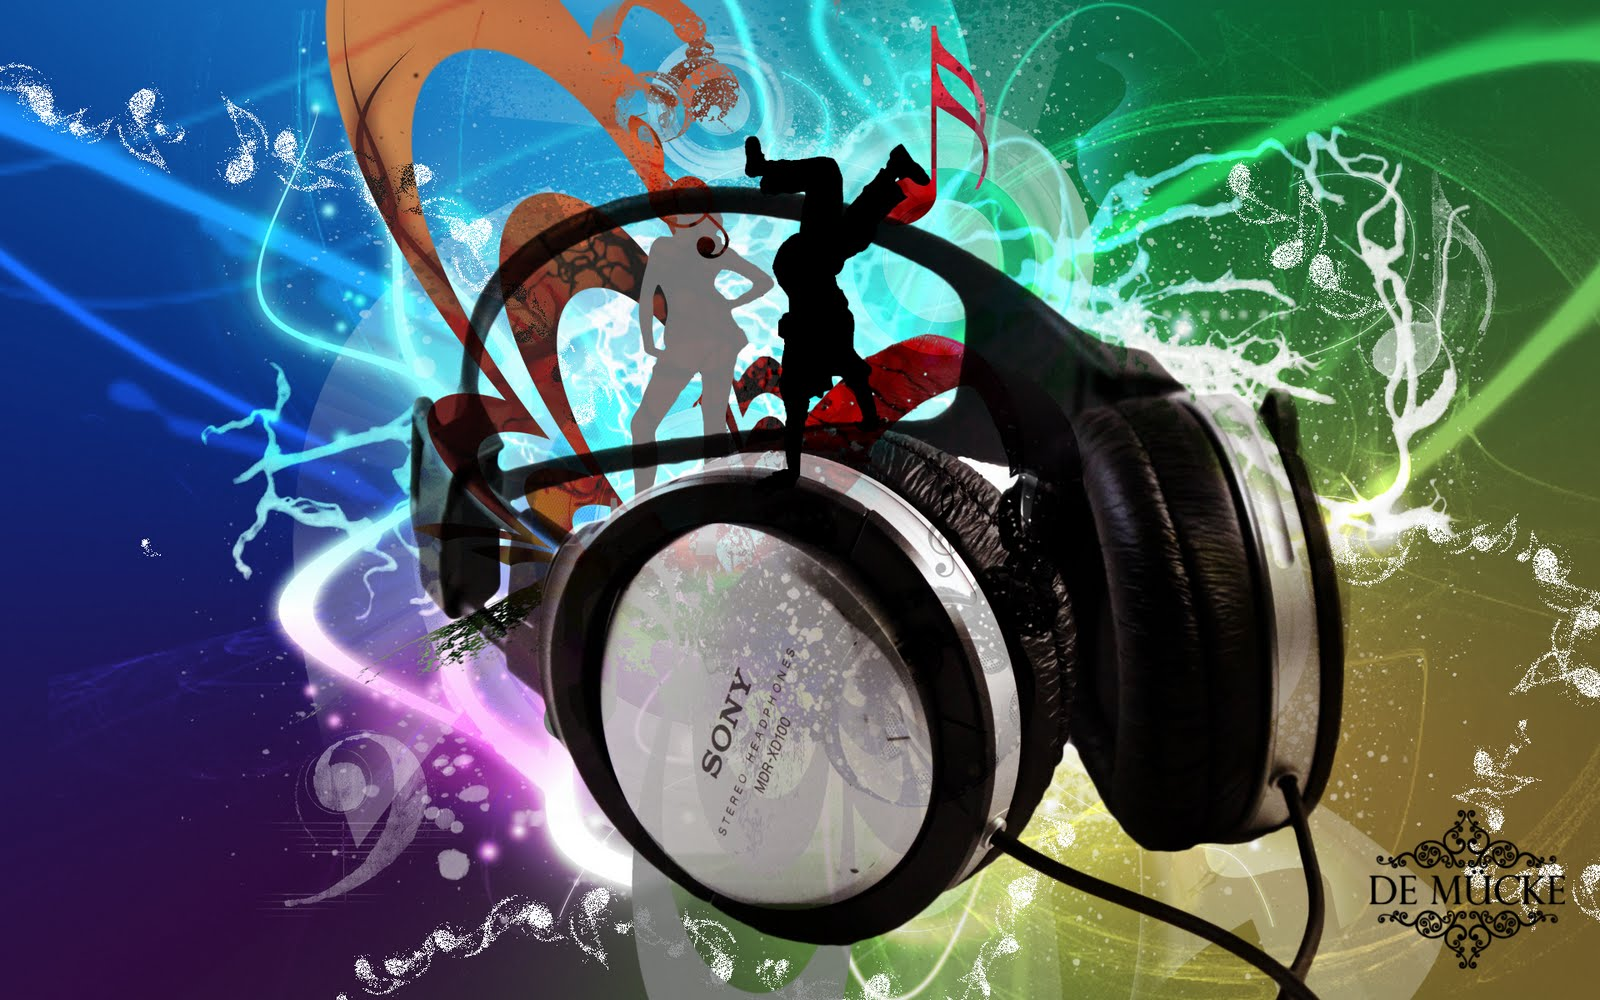 Cool music Background Wallpapers | HD Wallpapers Pics